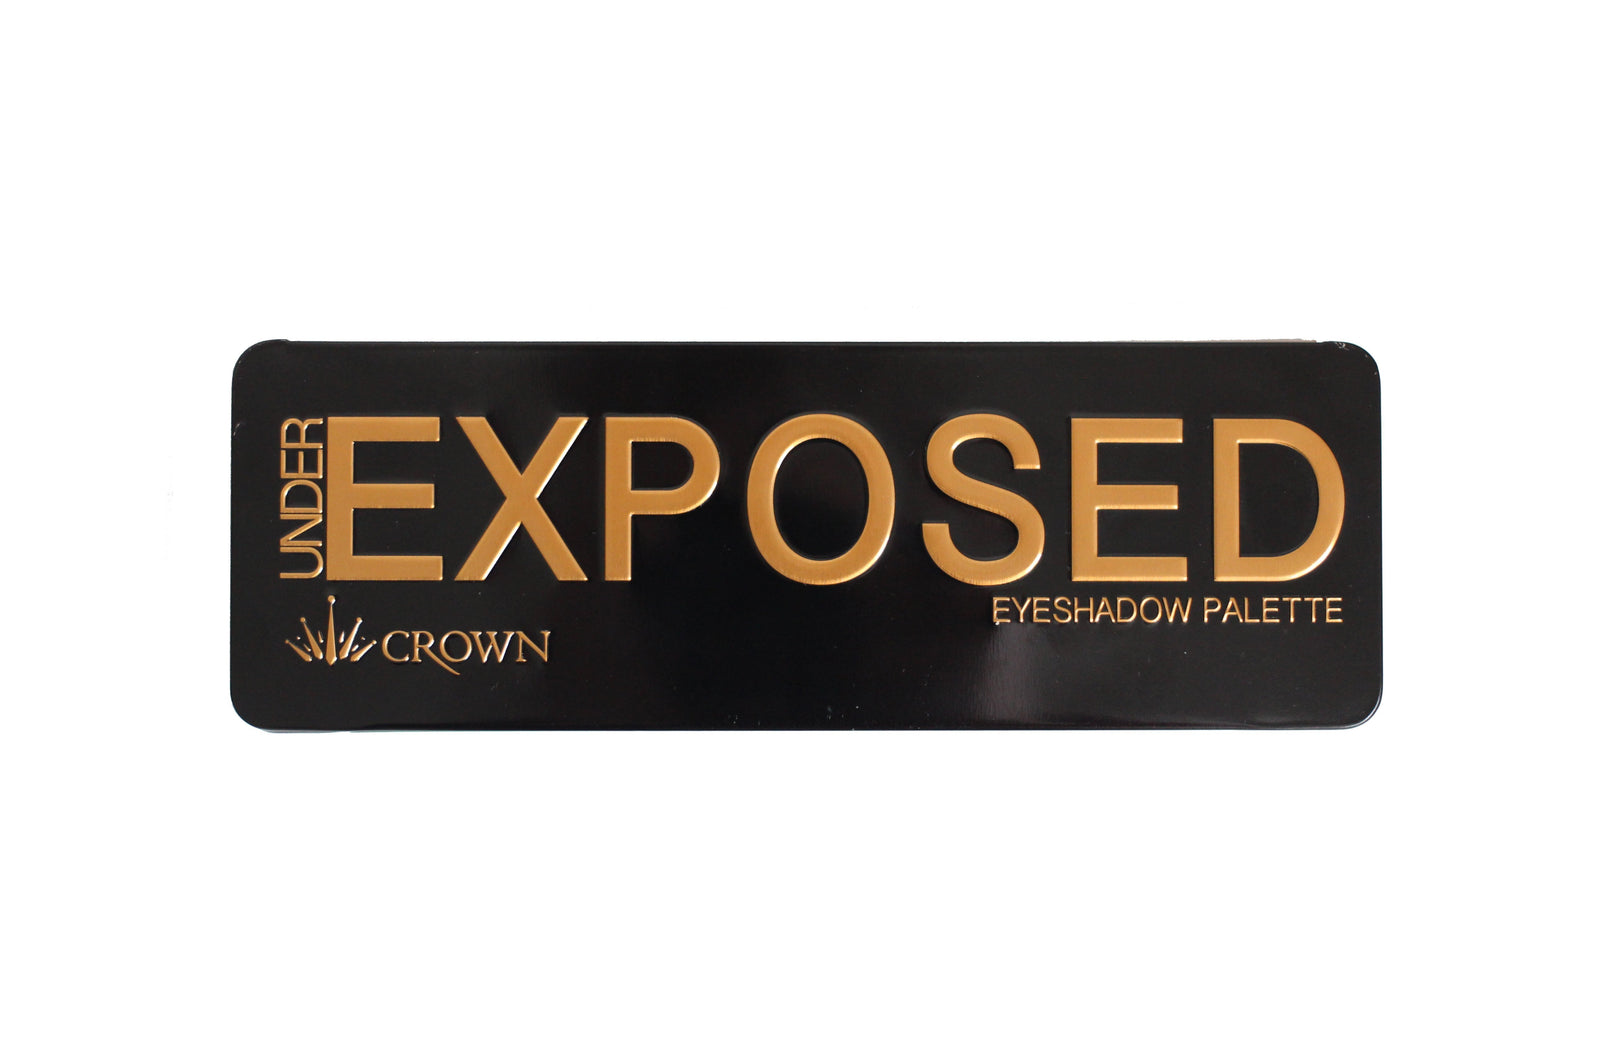 Under Exposed Eyeshadow Palette - Crownbrush